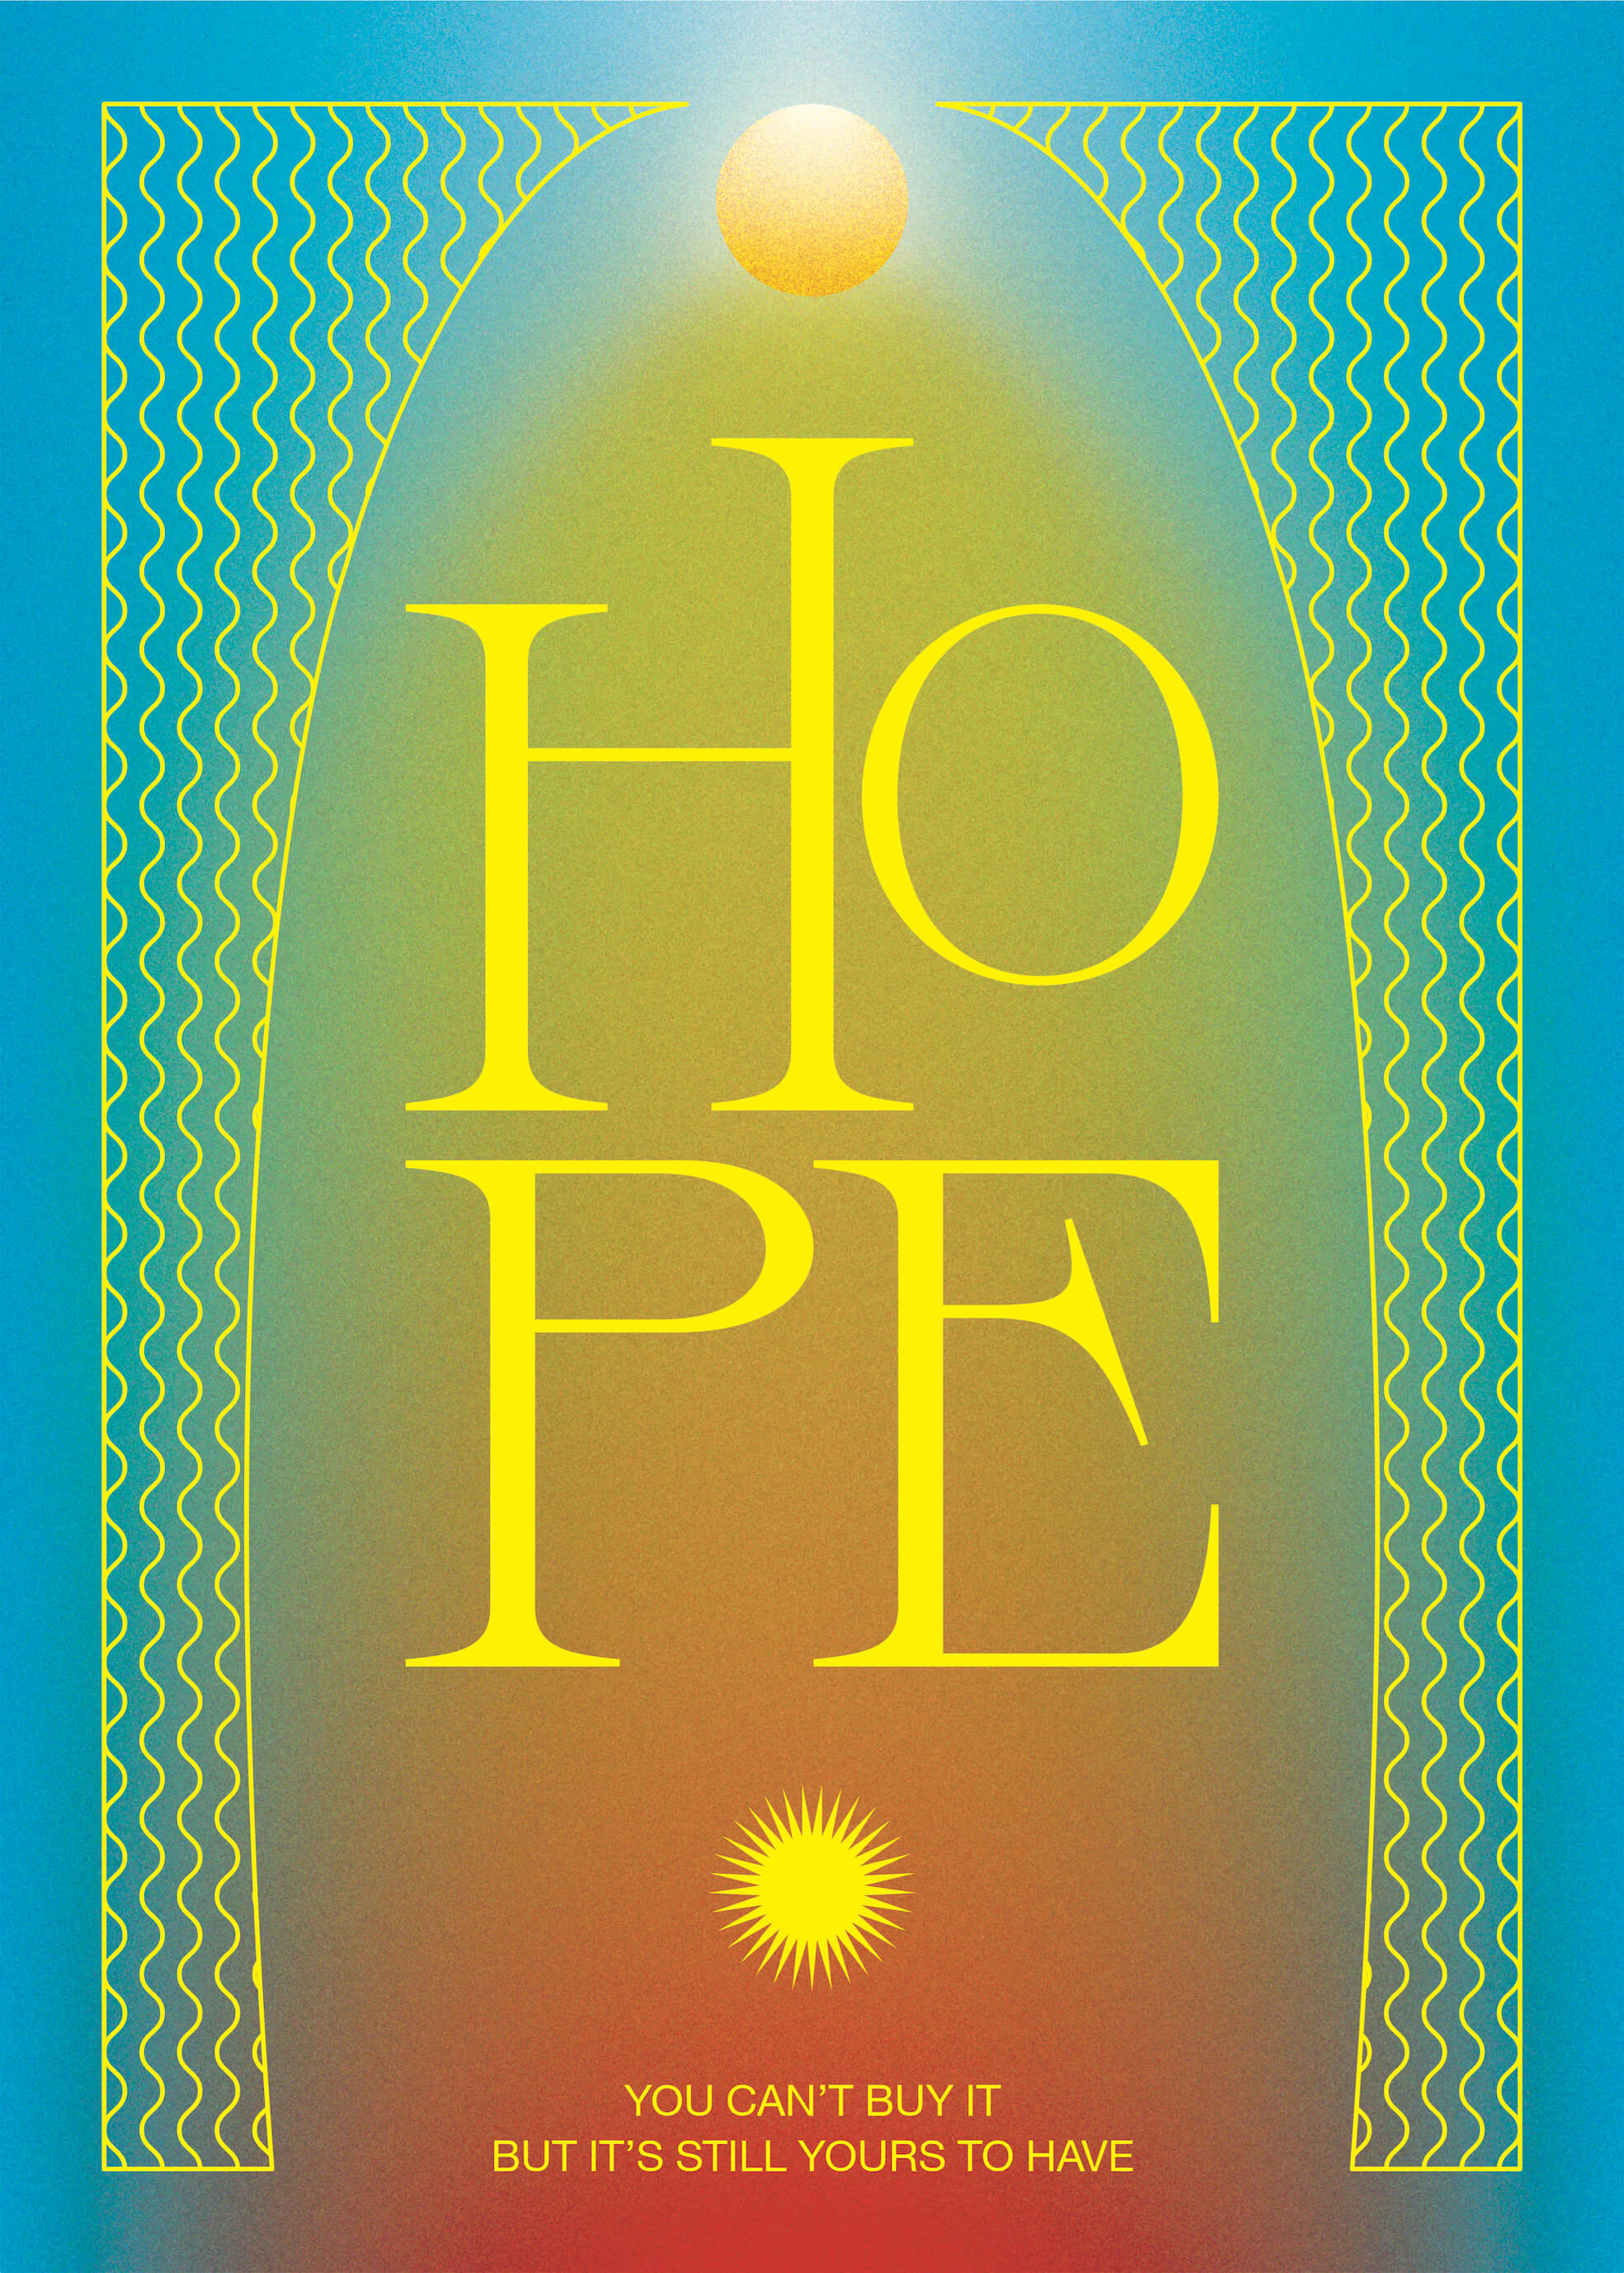 Hope - It's Yours To Have main image